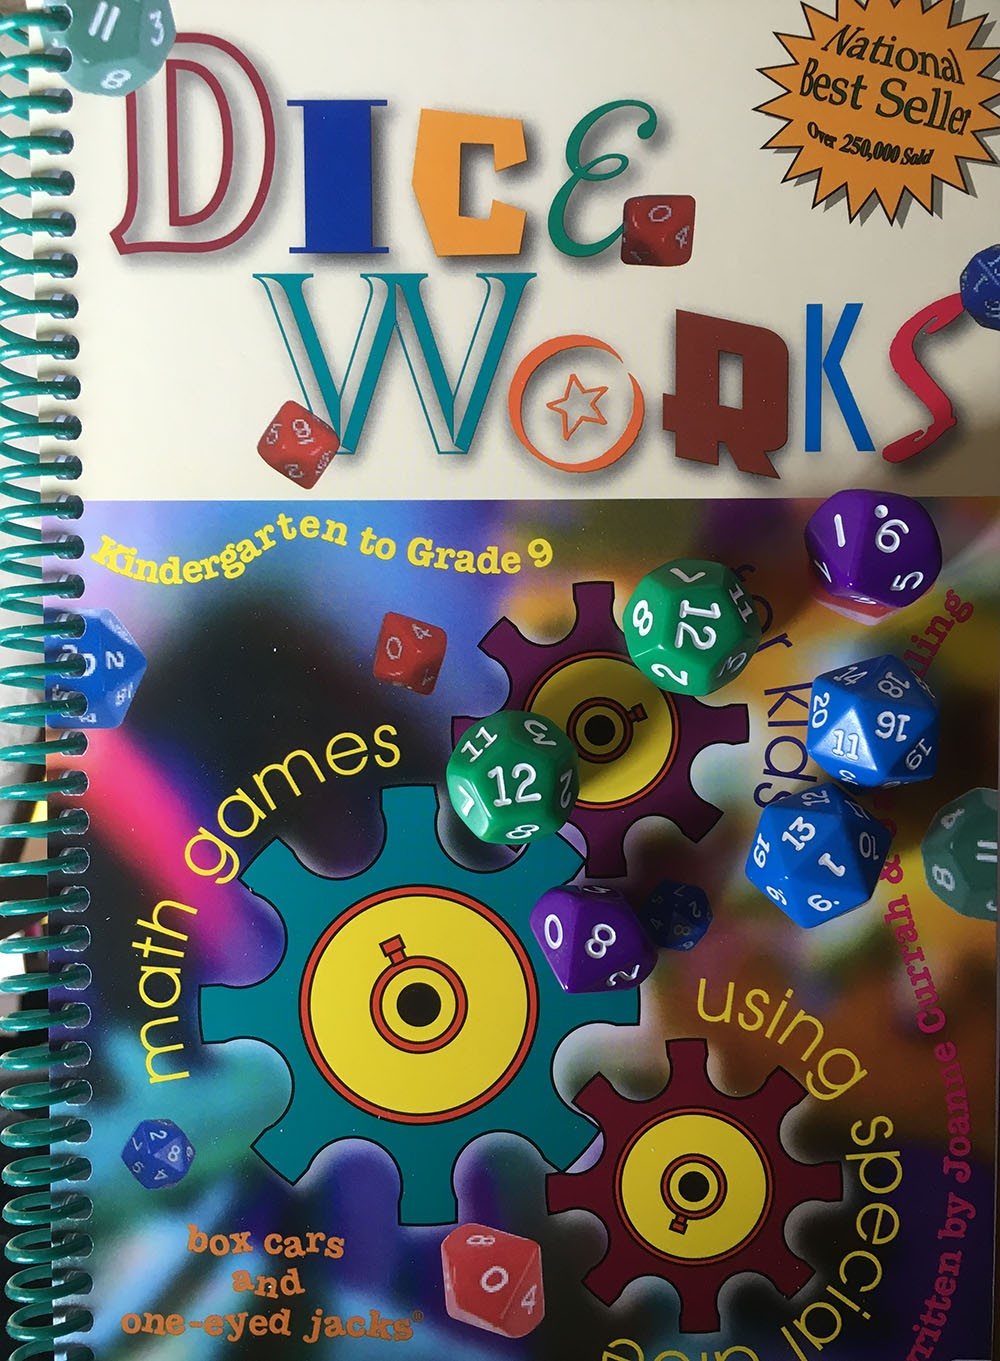 Dice Works: math games using special dice / Grades K-9 / Volume III